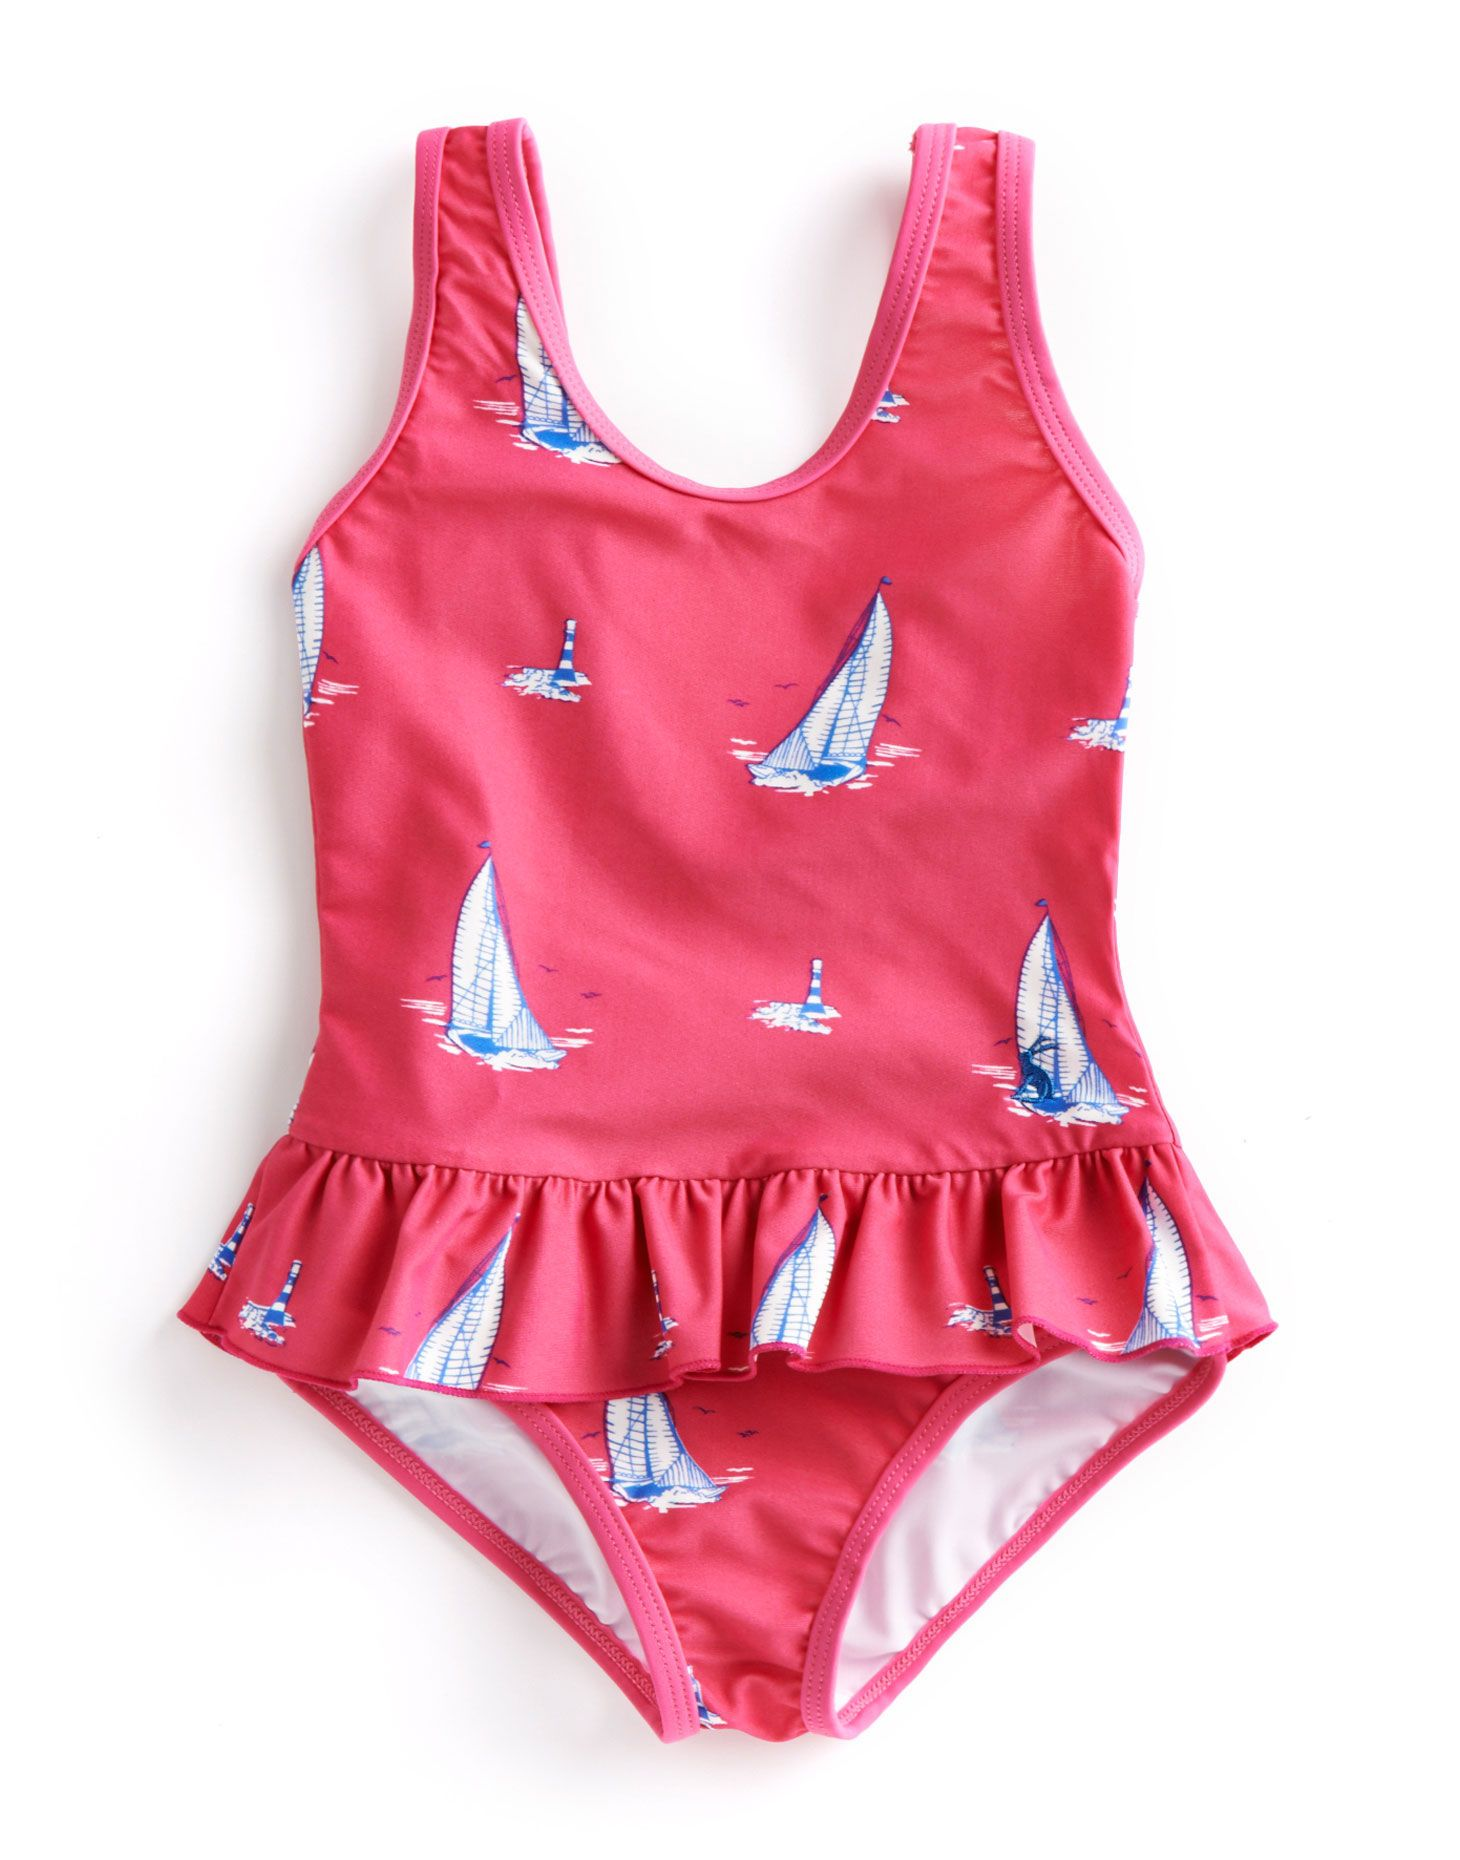 JNR SANDY Girls Swimming Costume-JOULES SS13 | Baby's Bungalow ...